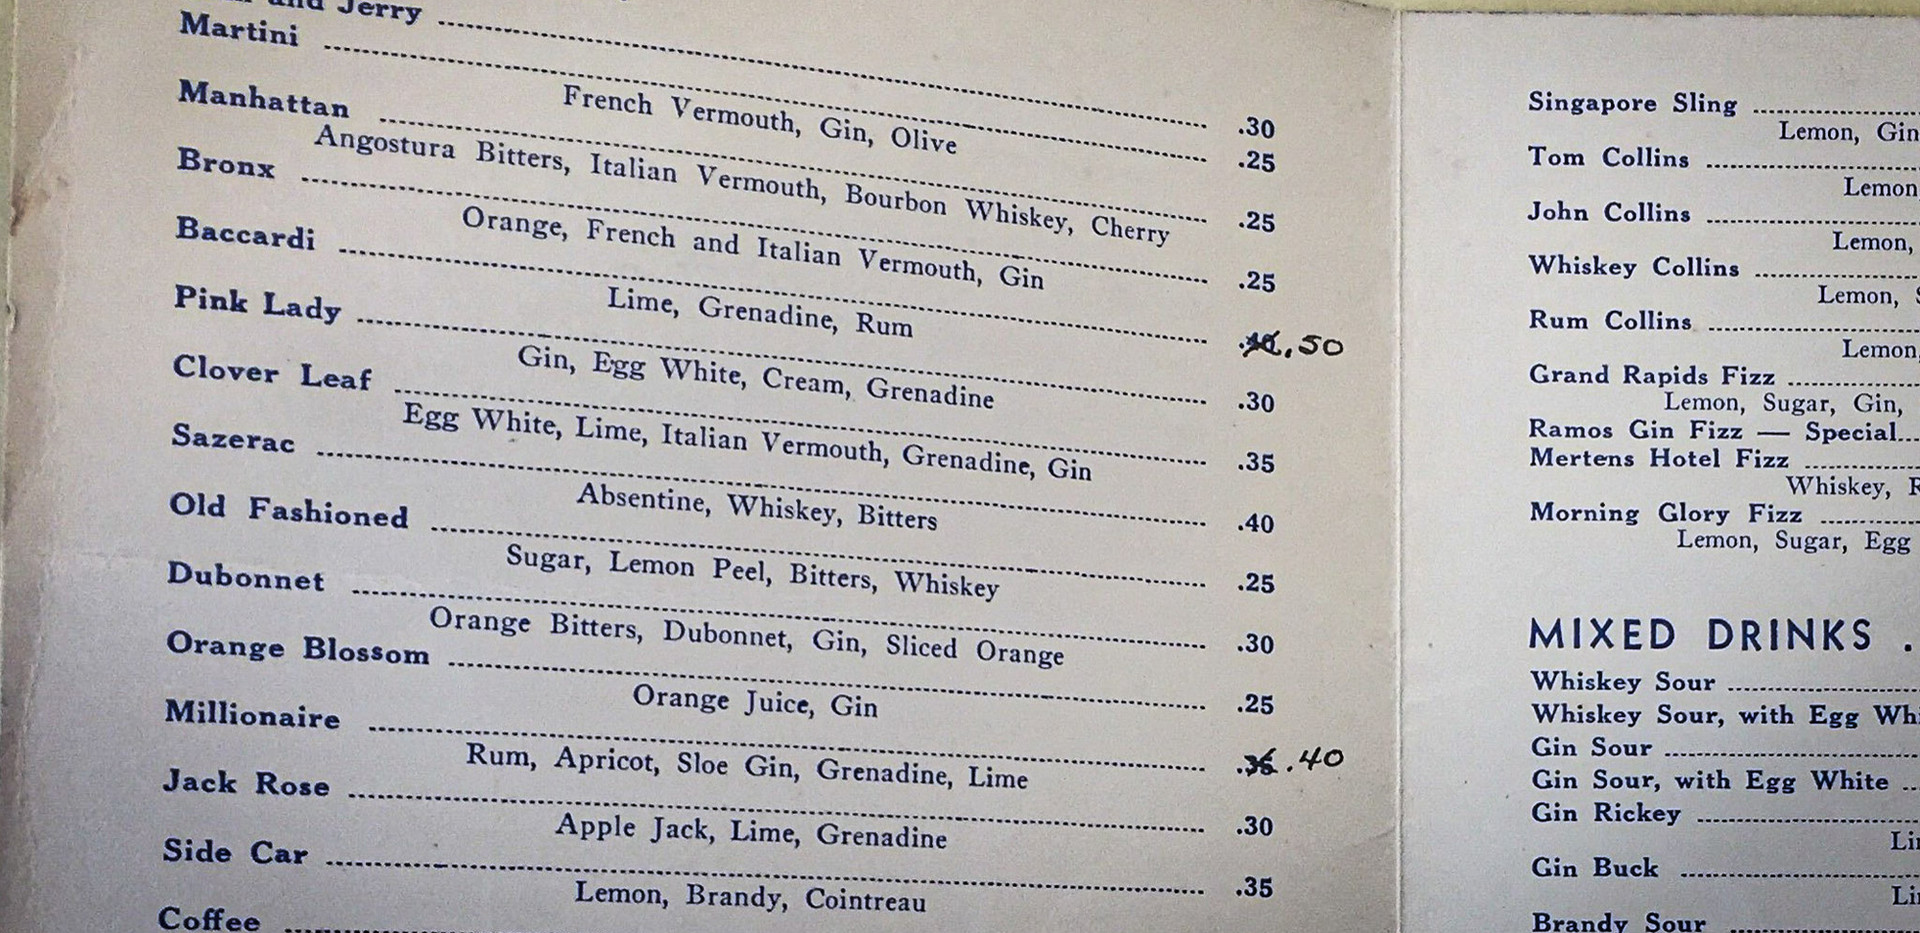 The original NHM Cocktail Menu